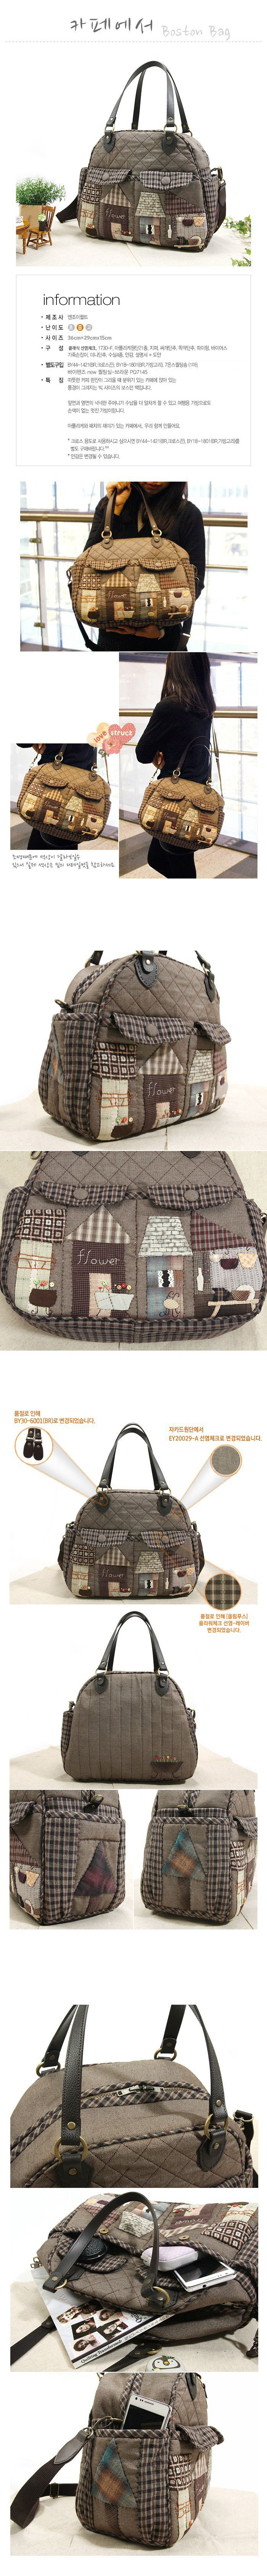 http://enjoyquilt.co.kr/goods/view.asp?p_code=Q00056153100&cate=717&menu=4